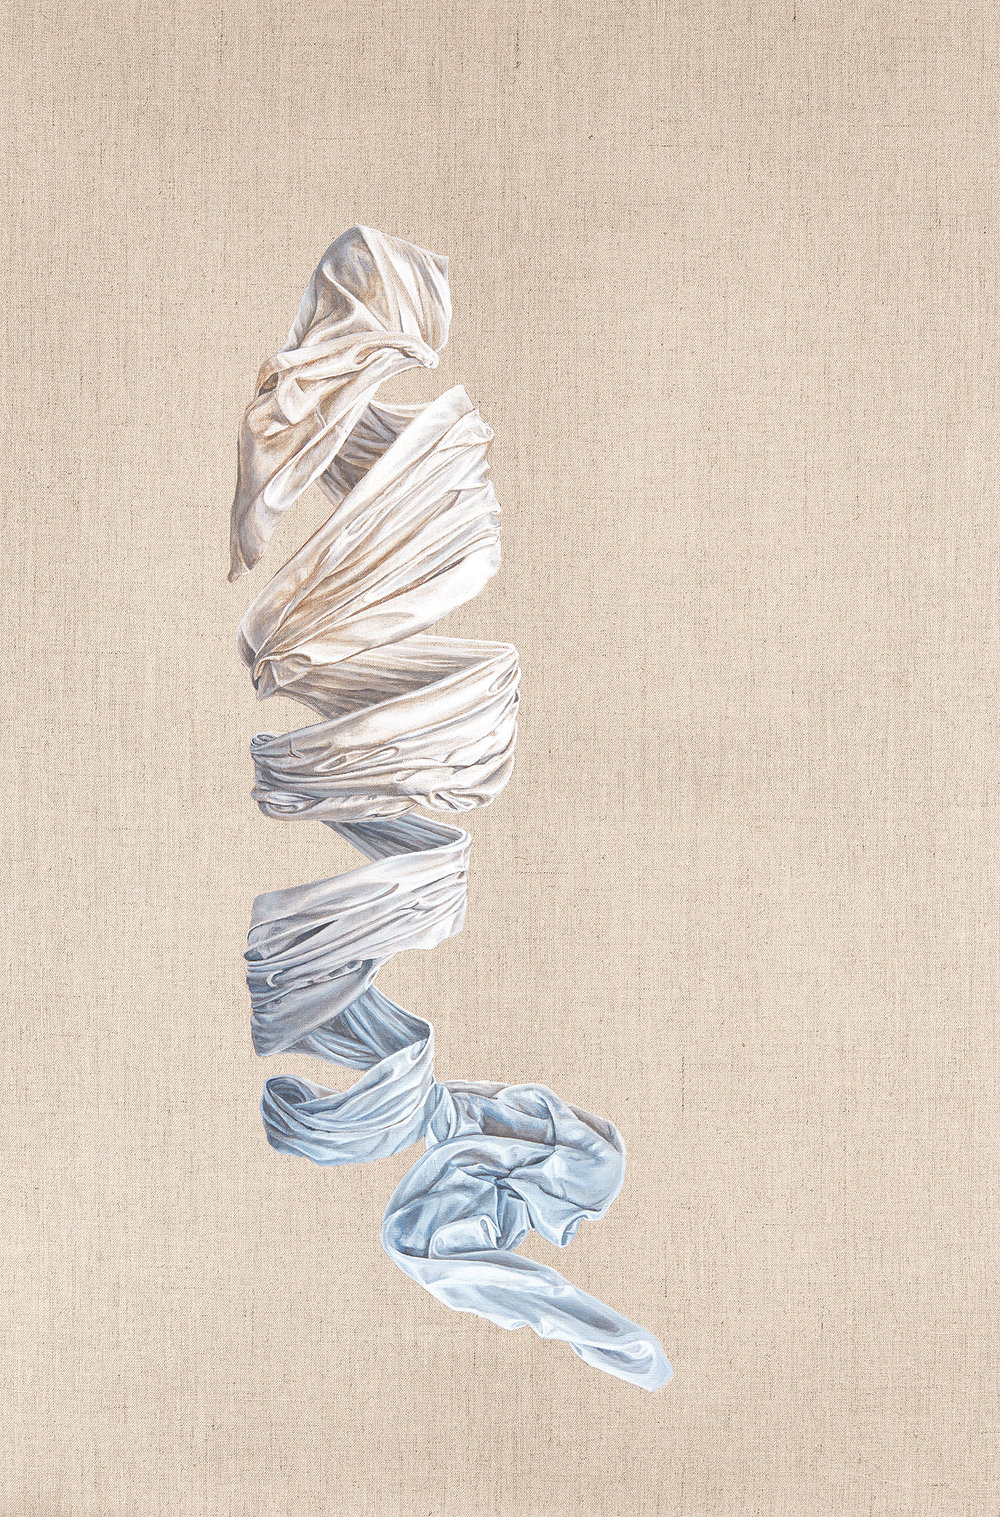 Coming Undone  Acrylic on Linen 36 x 24 inches